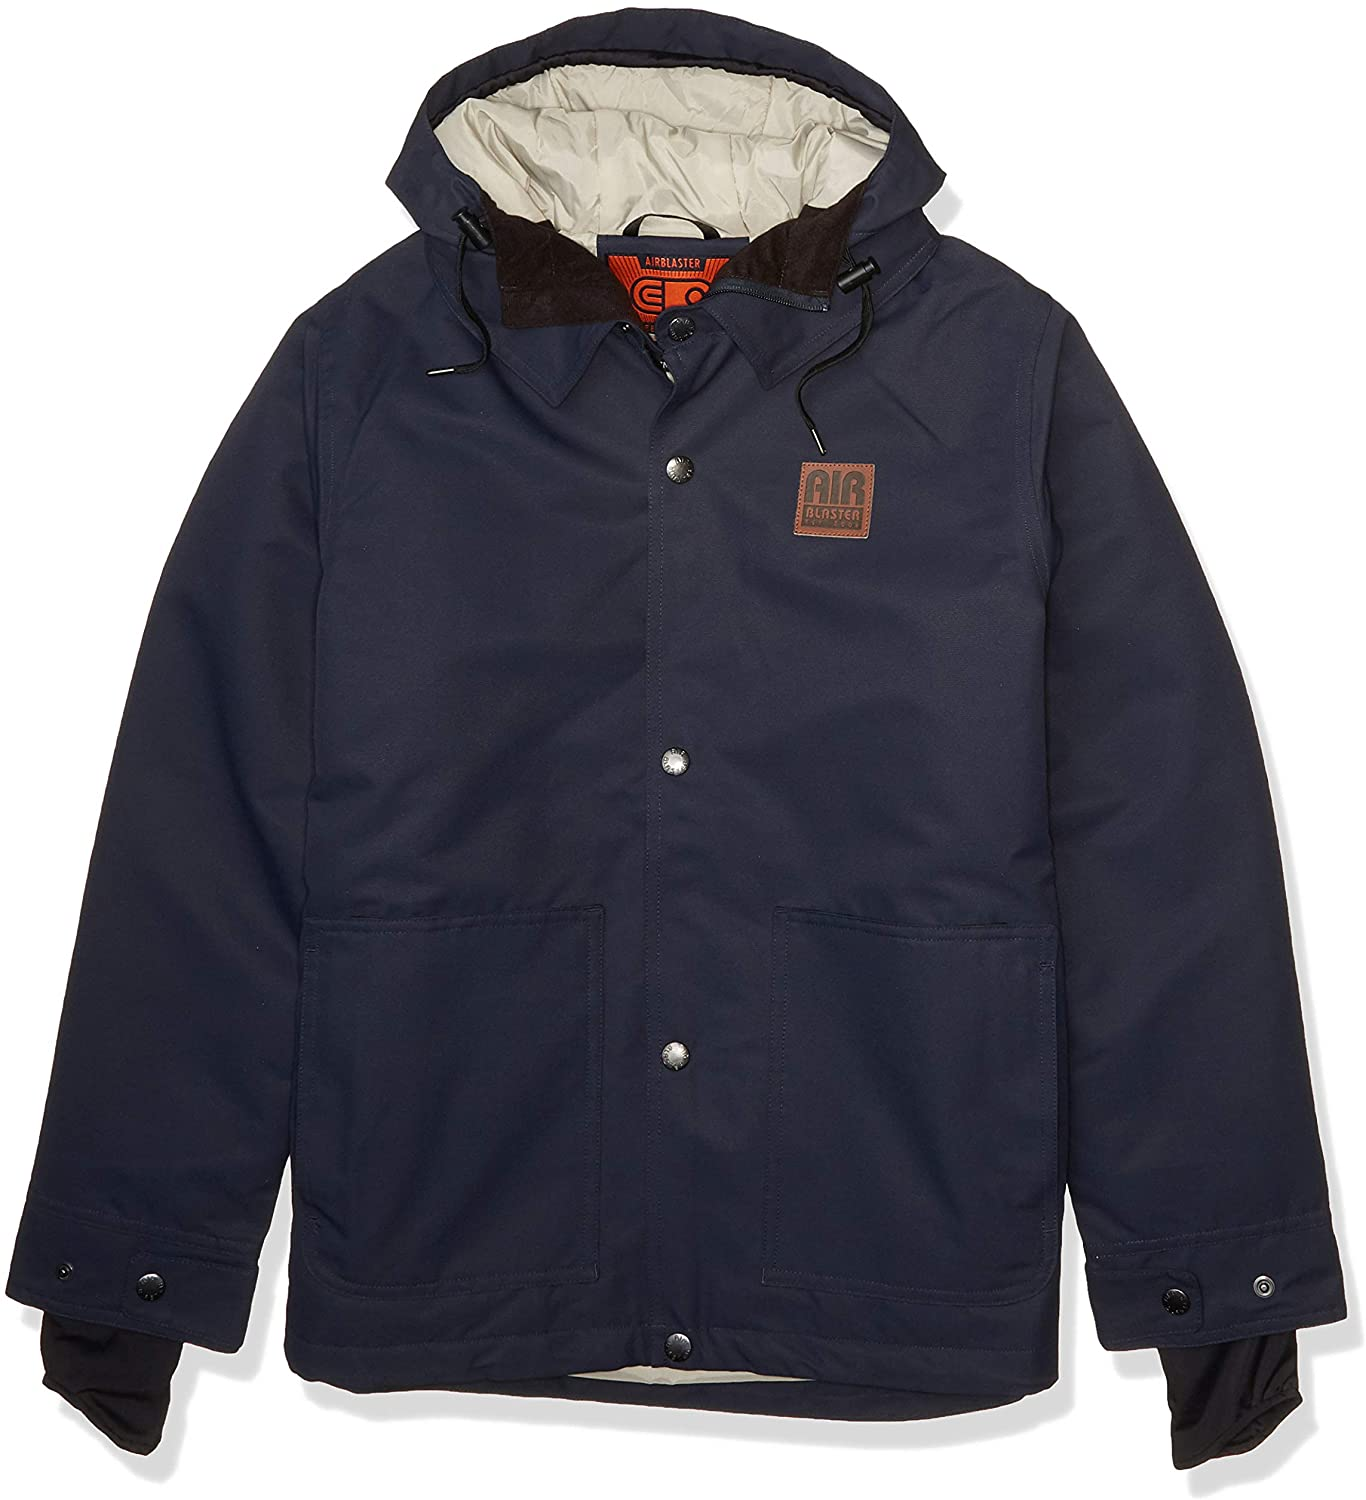 AIRBLASTER mens Work Jacket Lightly Insulated Outerwear